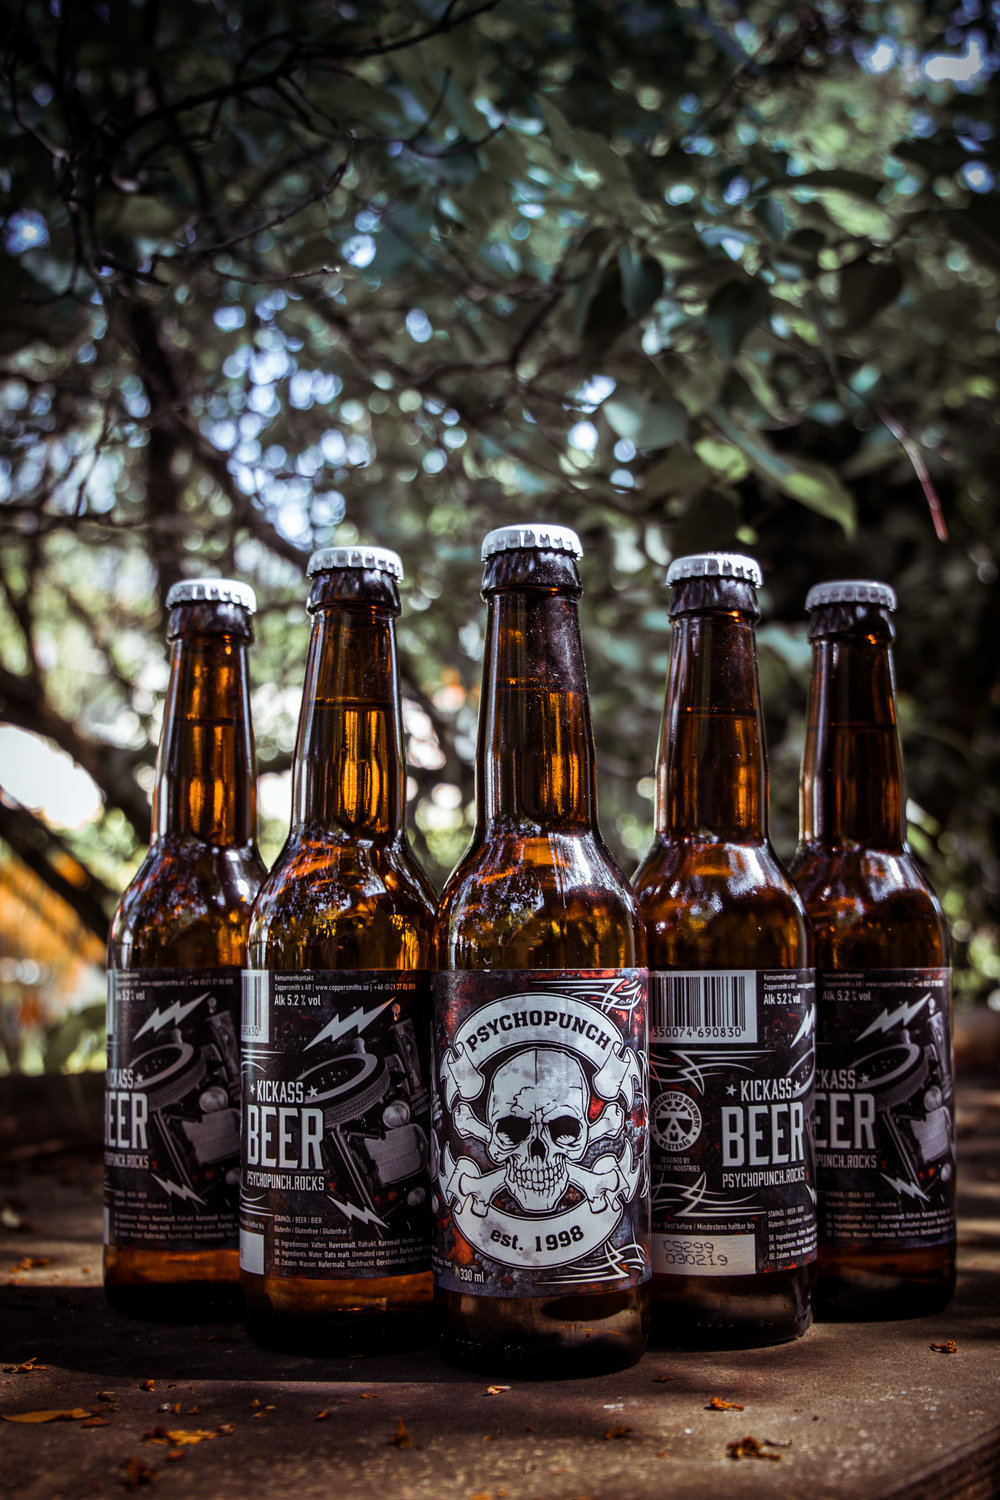 Psychopunch Beer by Dirk Behlau 2018-4725.jpg